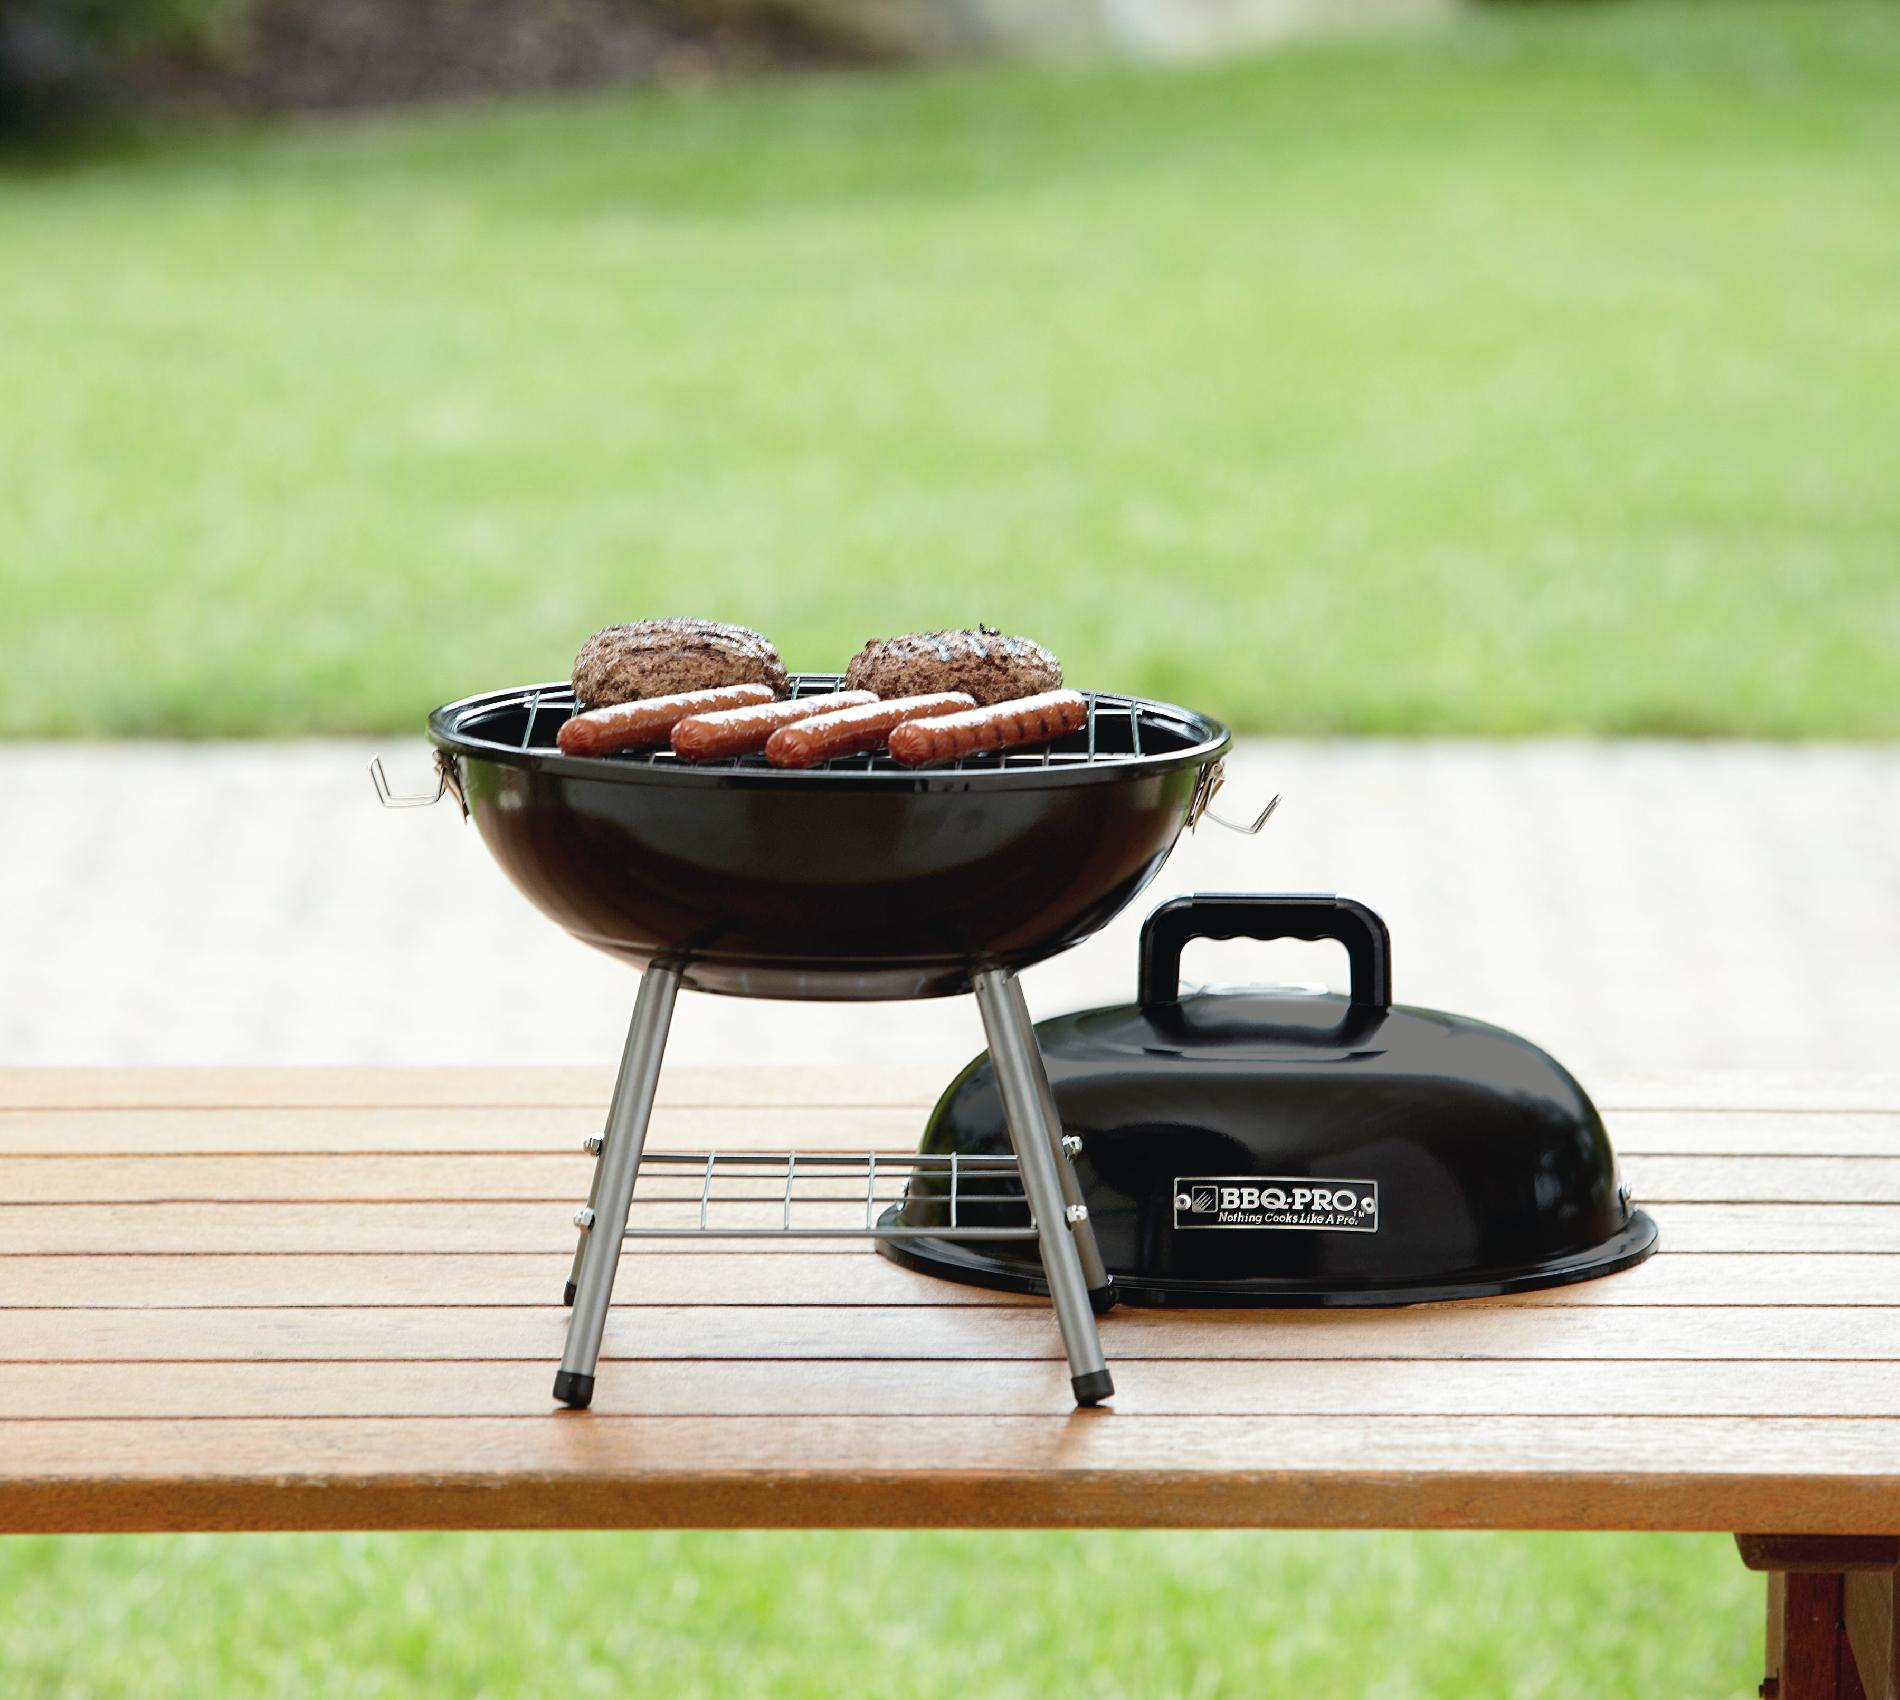 BBQ Pro Table Top Charcoal Grill